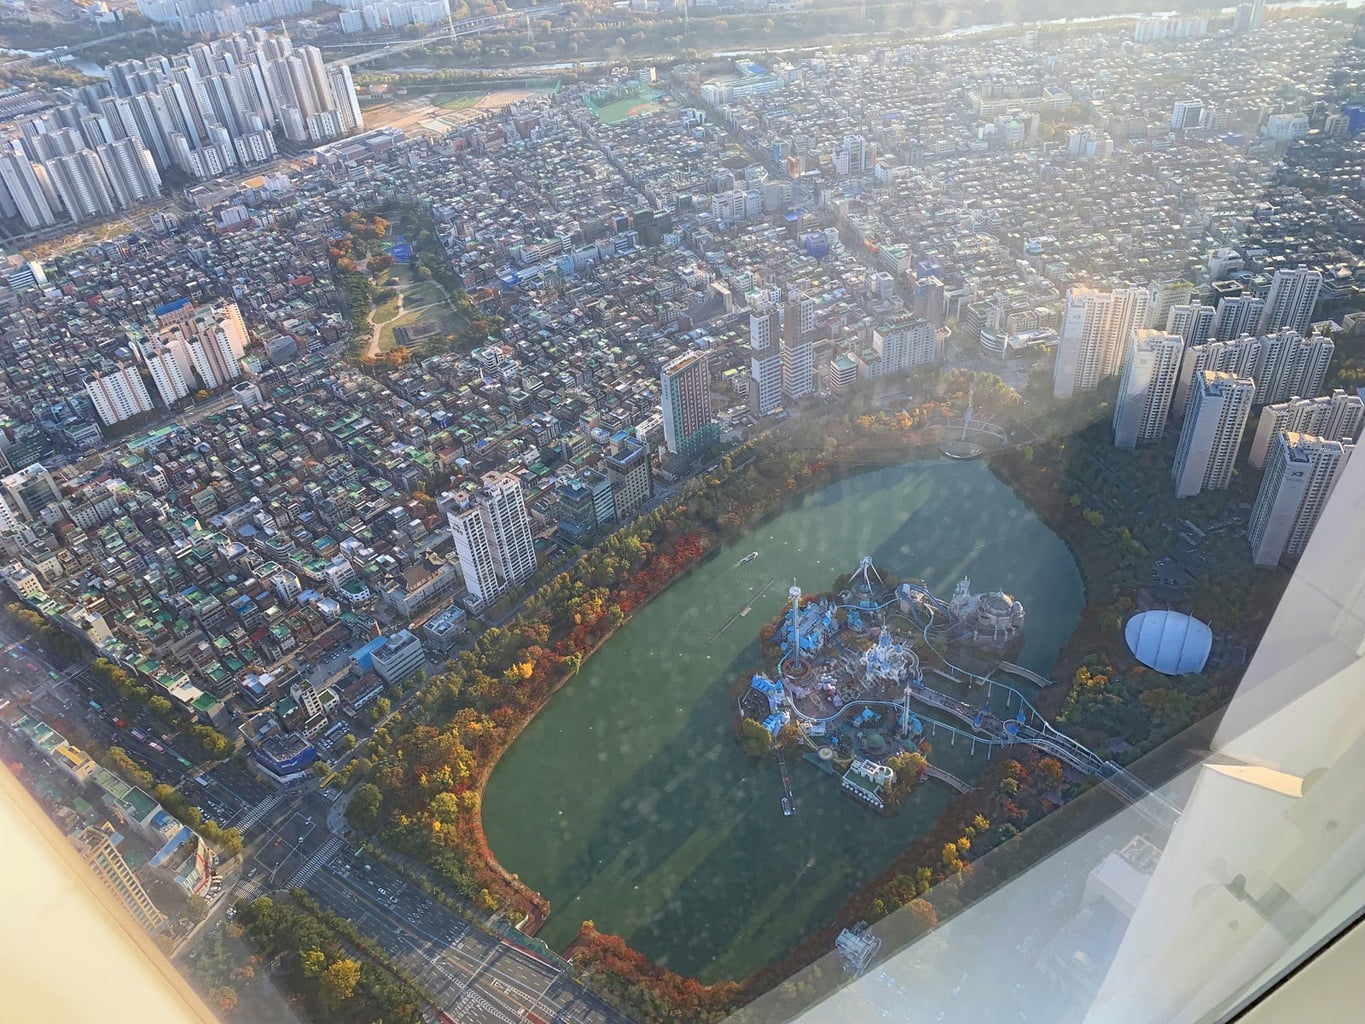 View of Lotte World from way up on the 121st floor of Lotte World Tower